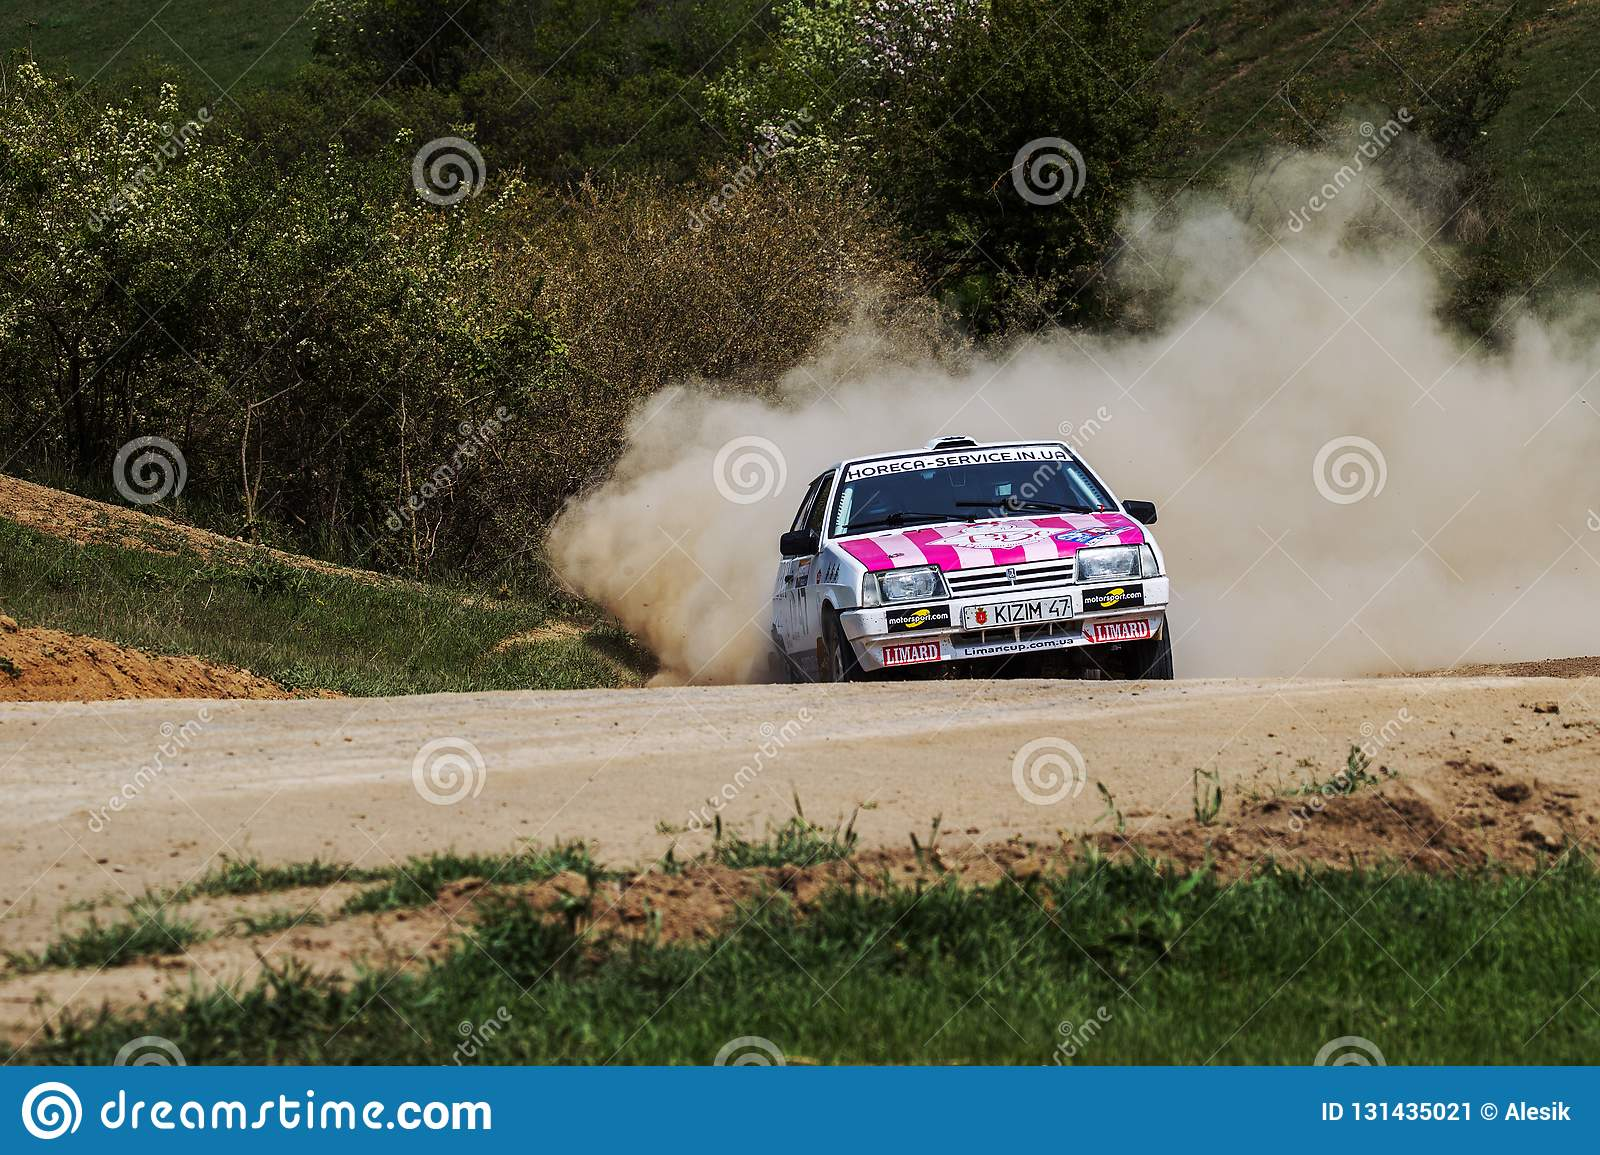 ODESSA, UKRAINE - April 30, 2017: Traditional rally Autocross Championship. Racing car is dangerous enters steep turn of race